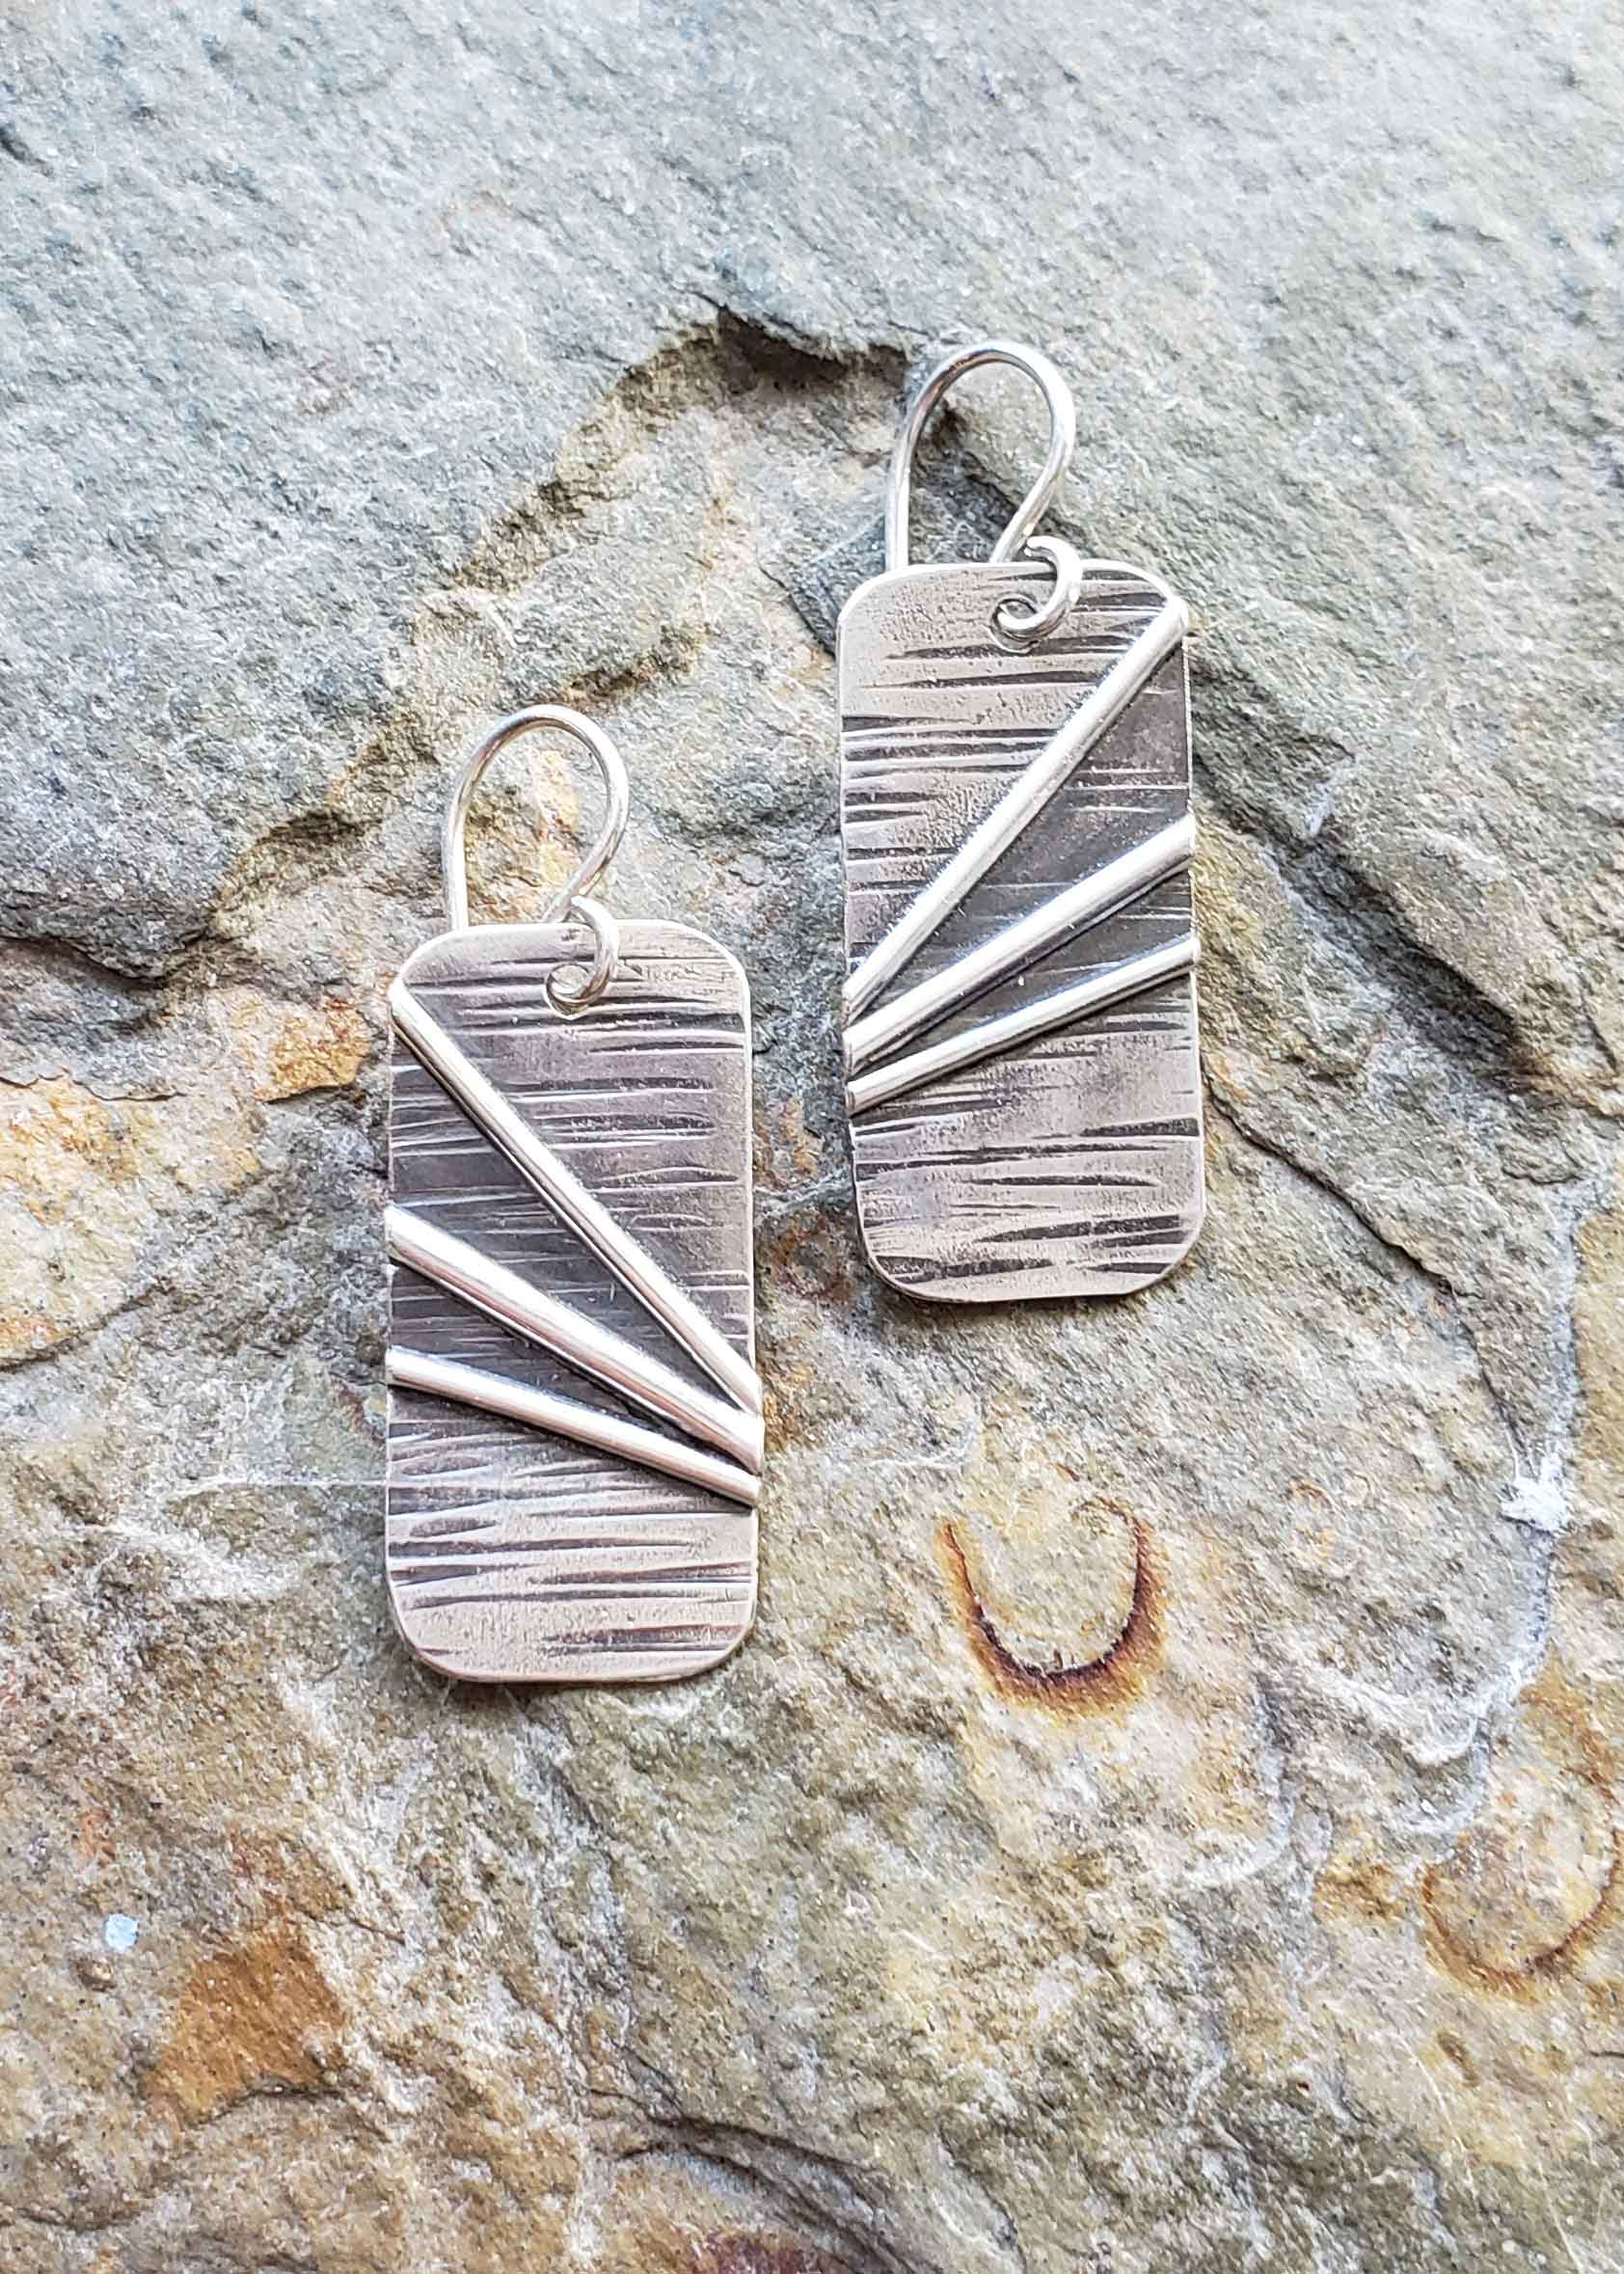 Contemporary silver earrings by Dona Miller